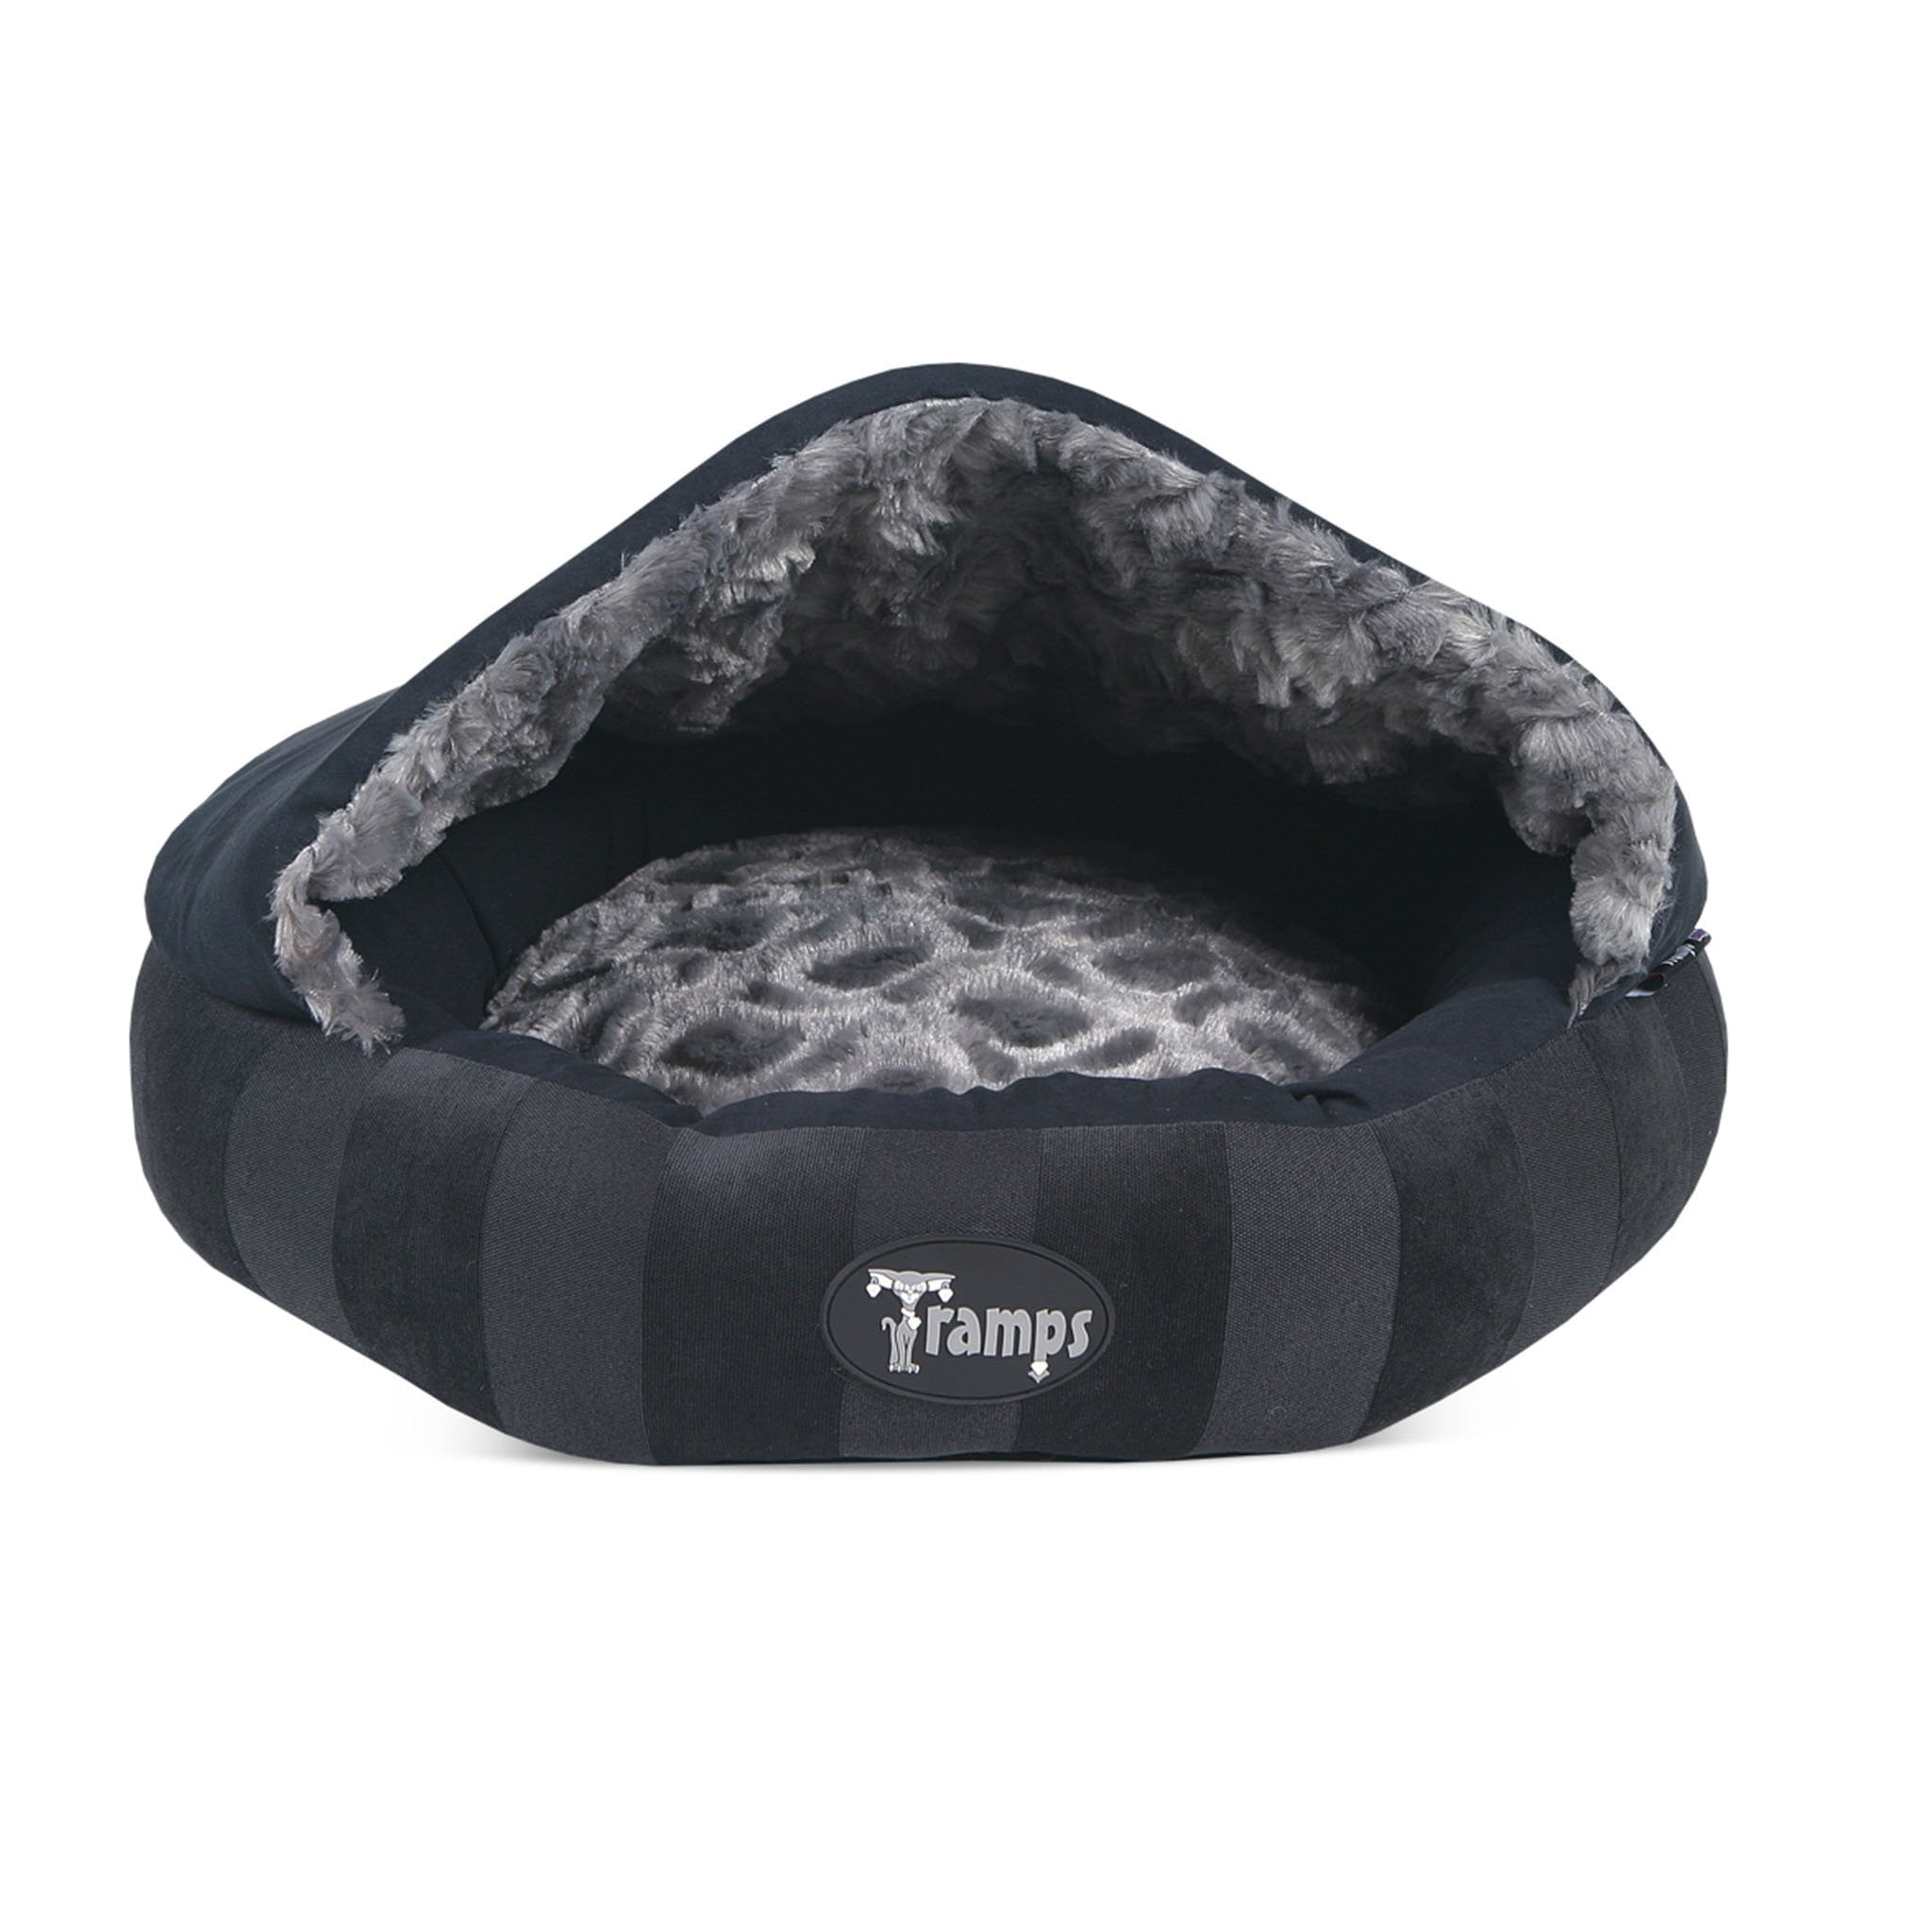 Tramps AristoCat Dome Cat Bed - comfypet